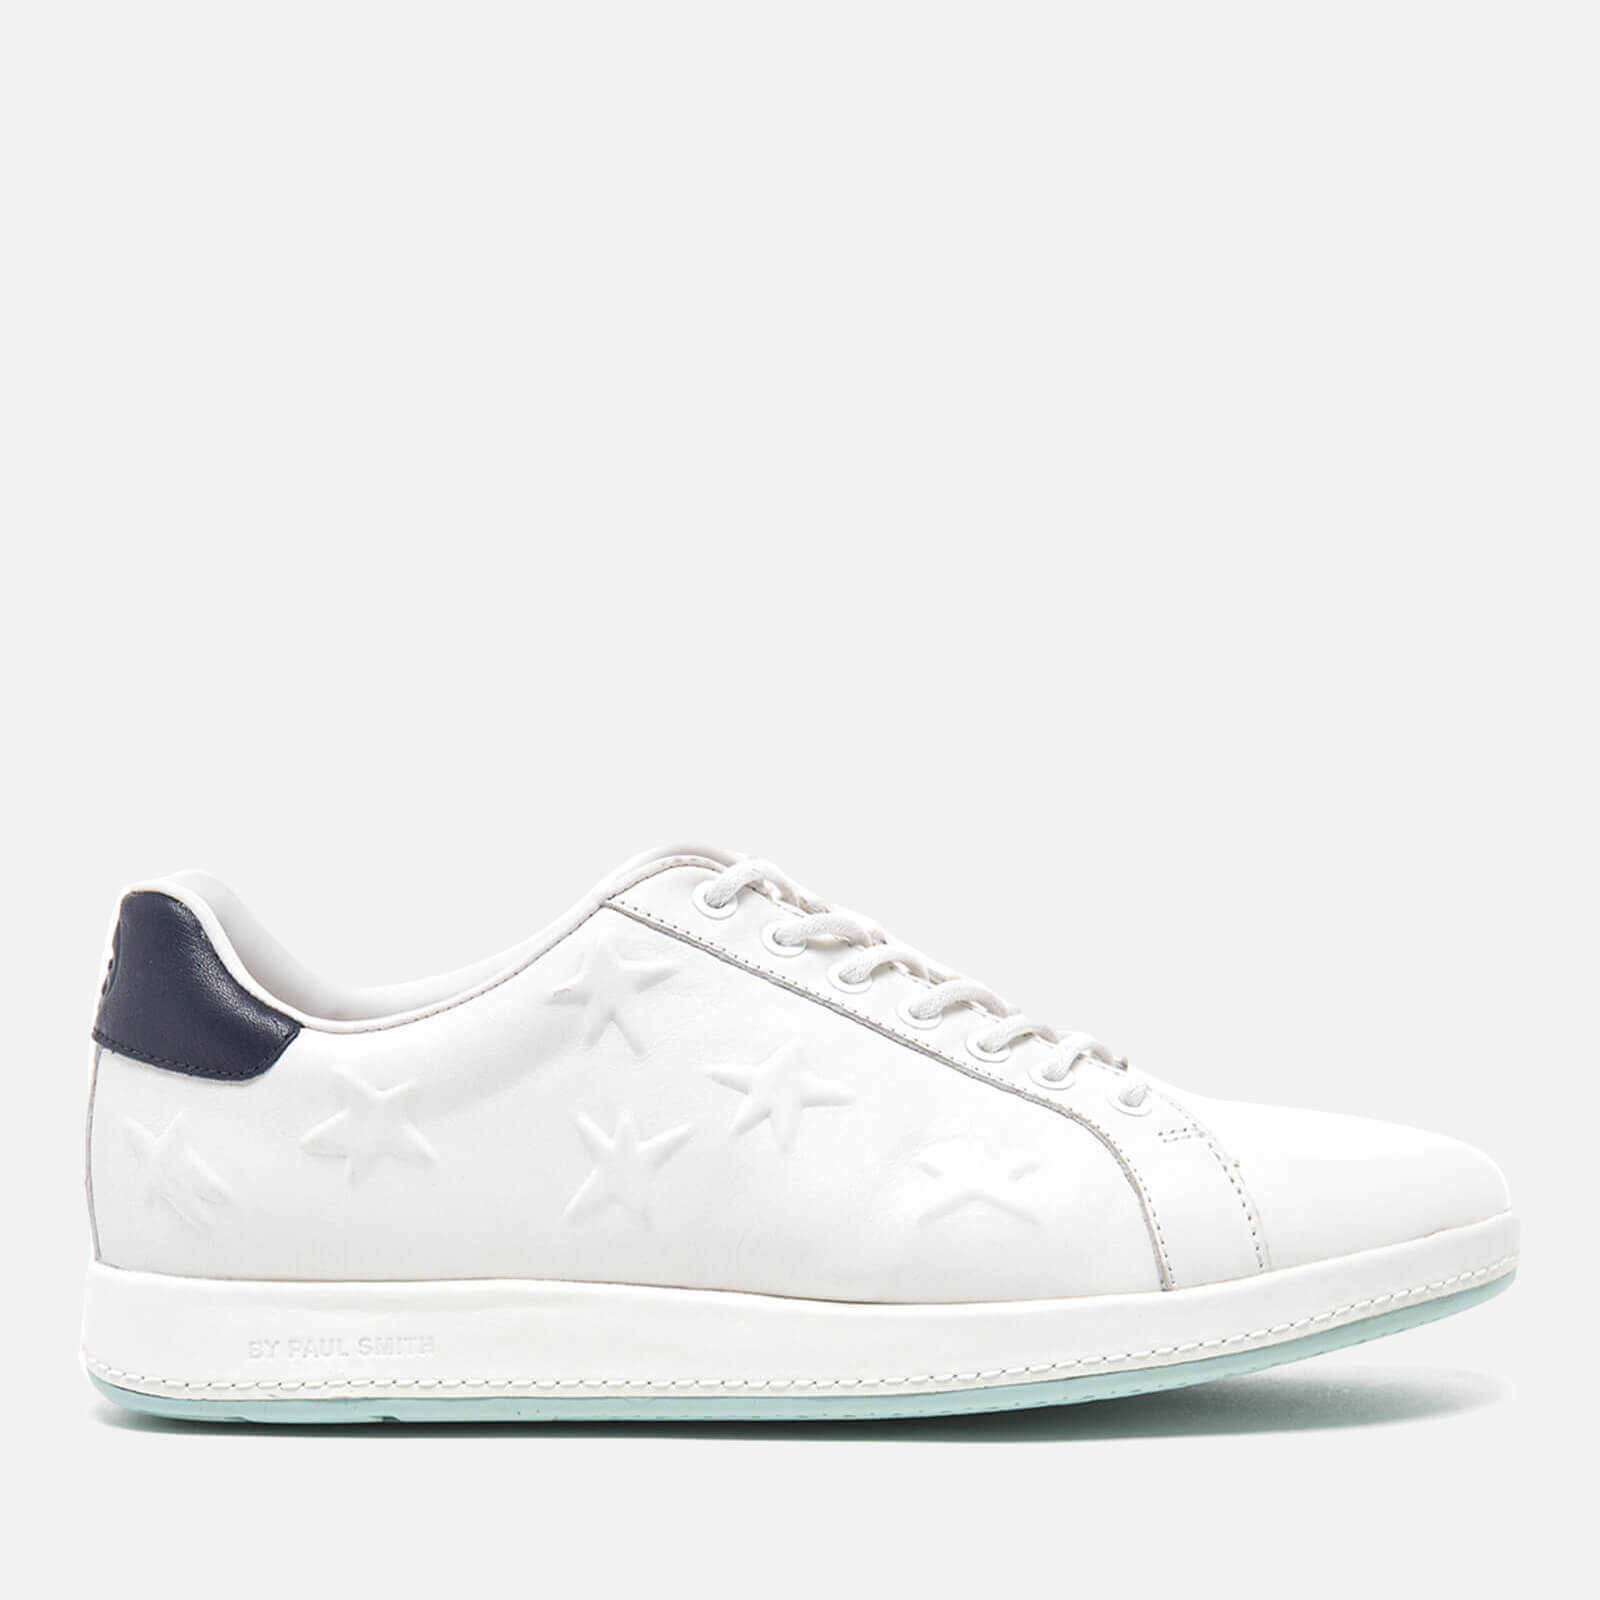 59f97f3e761 PS by Paul Smith Women's Lapin Star Embossed Trainers - White Mono Lux -  Free UK Delivery over £50